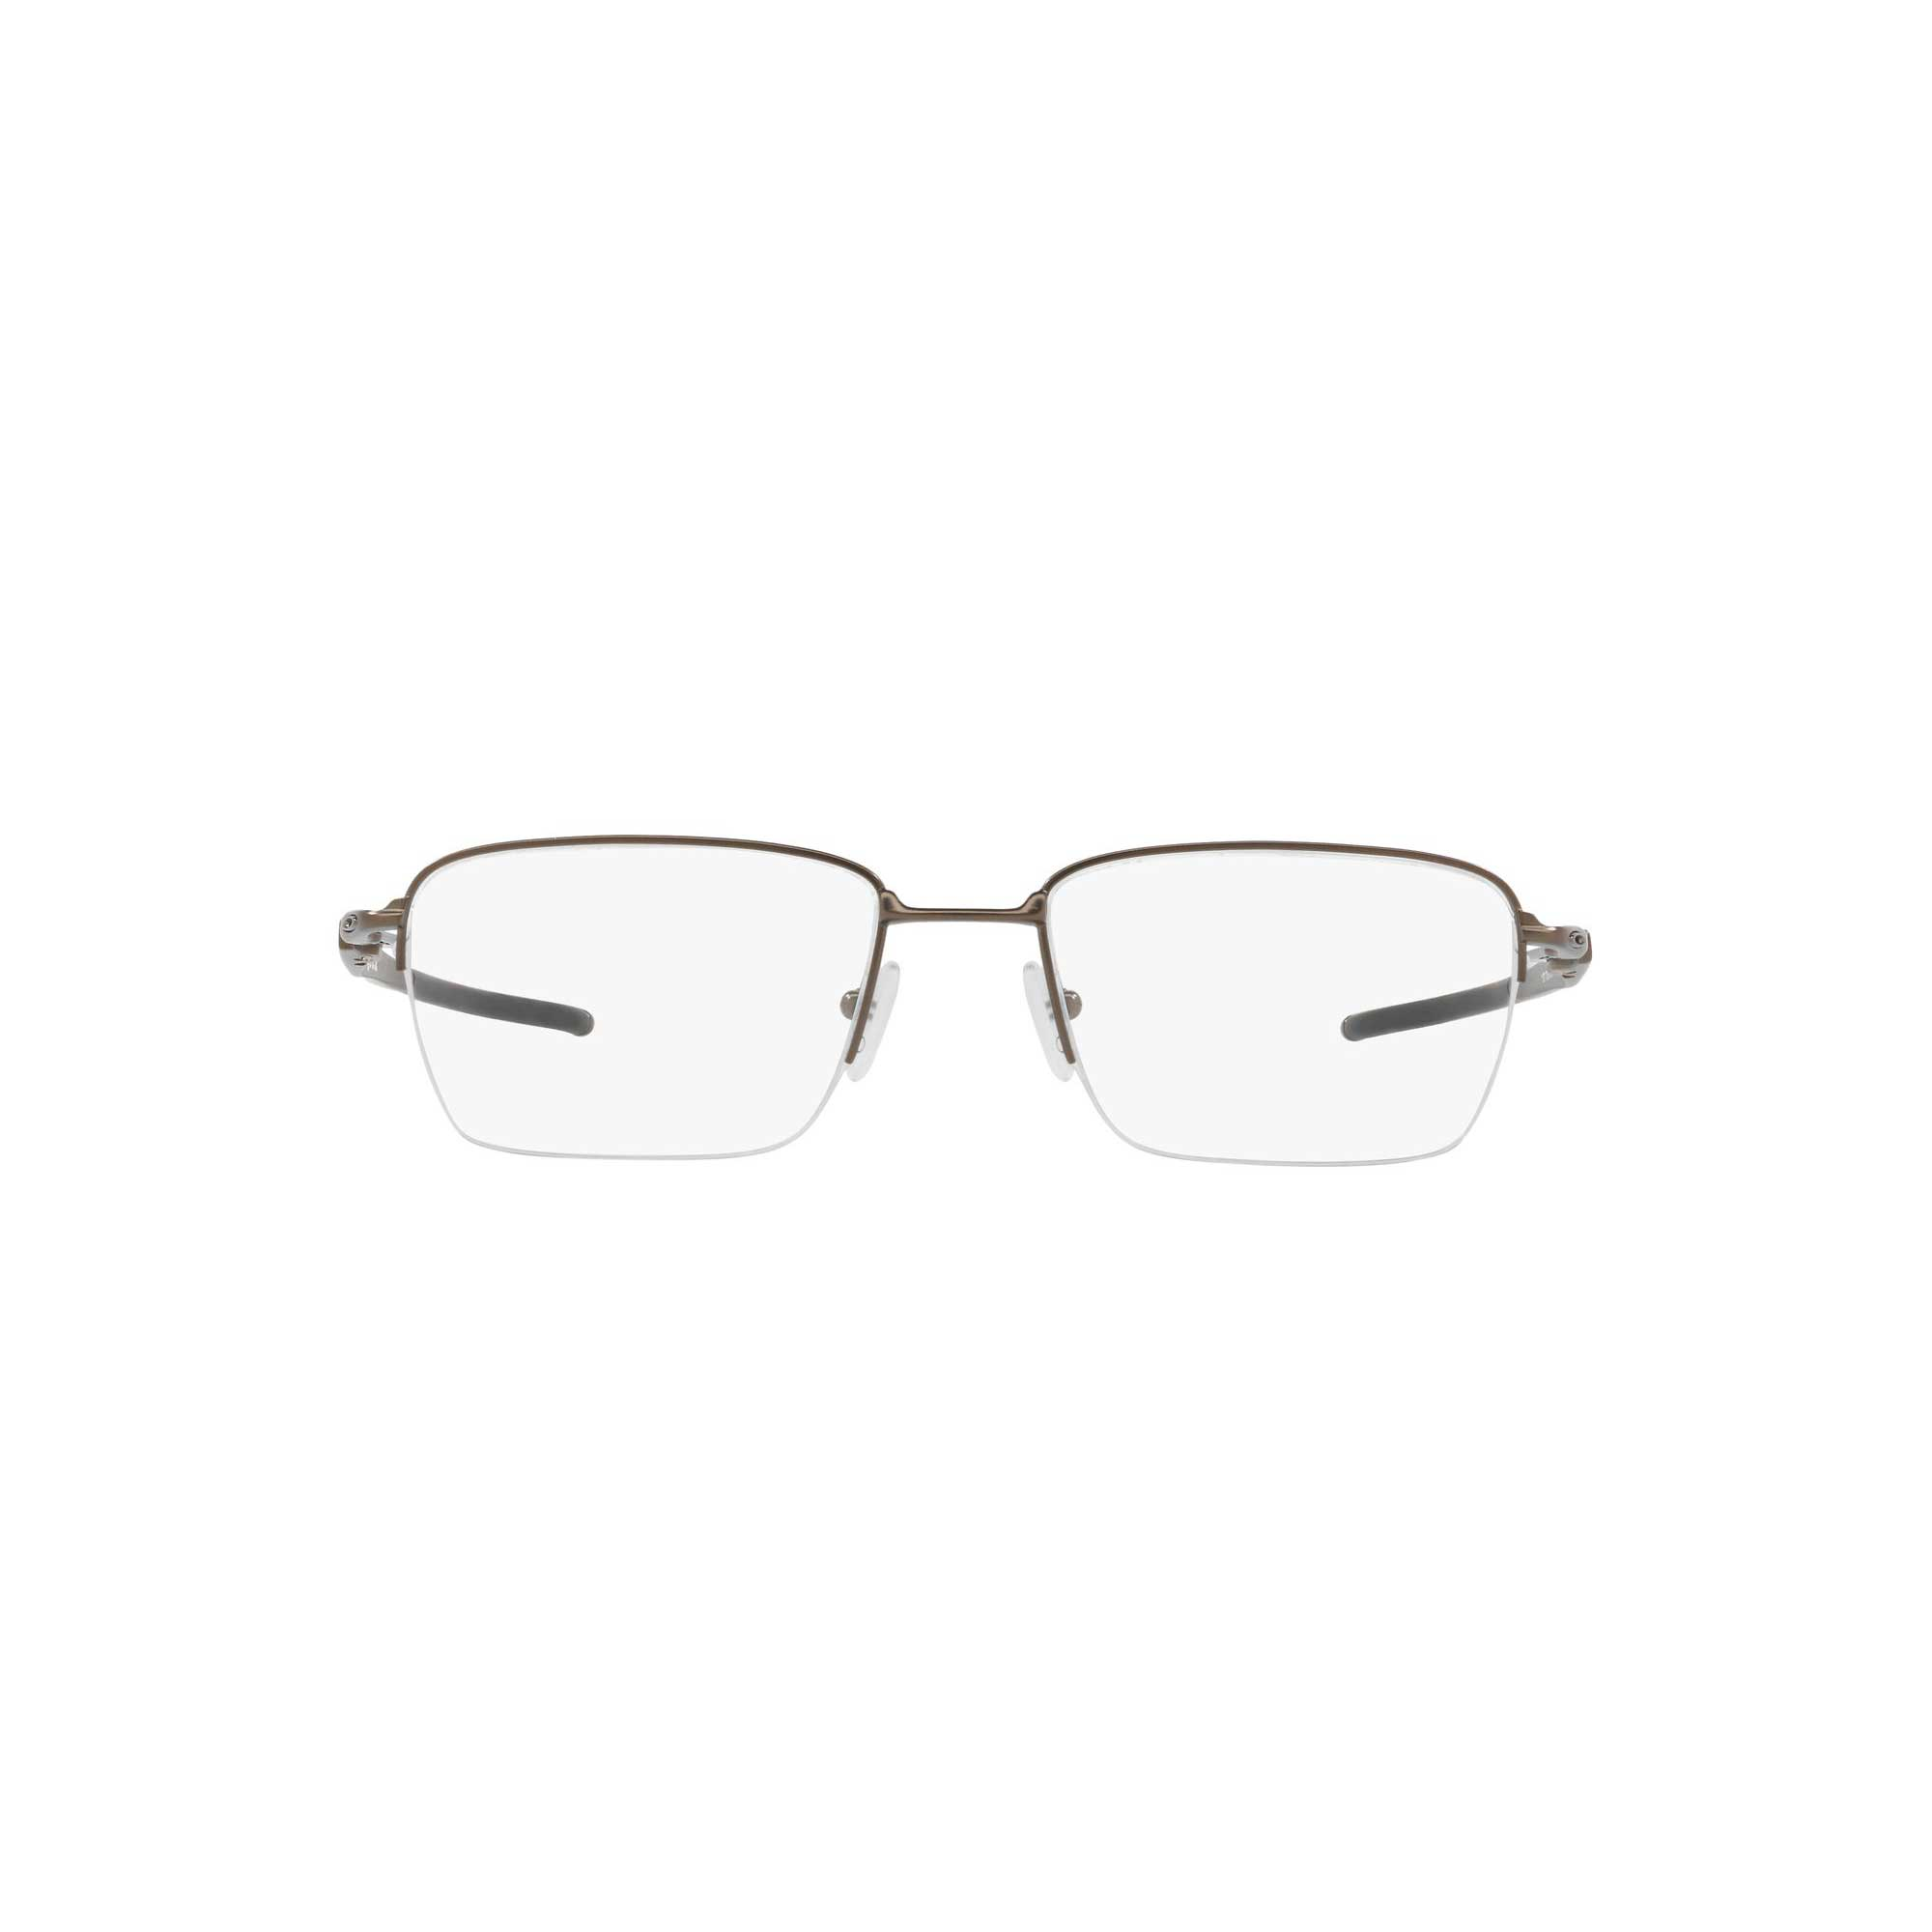 53bc9bc587 Oakley - Gauge 3.2 Blade - OX5128 - 512802 - 512802 - Glasses ...